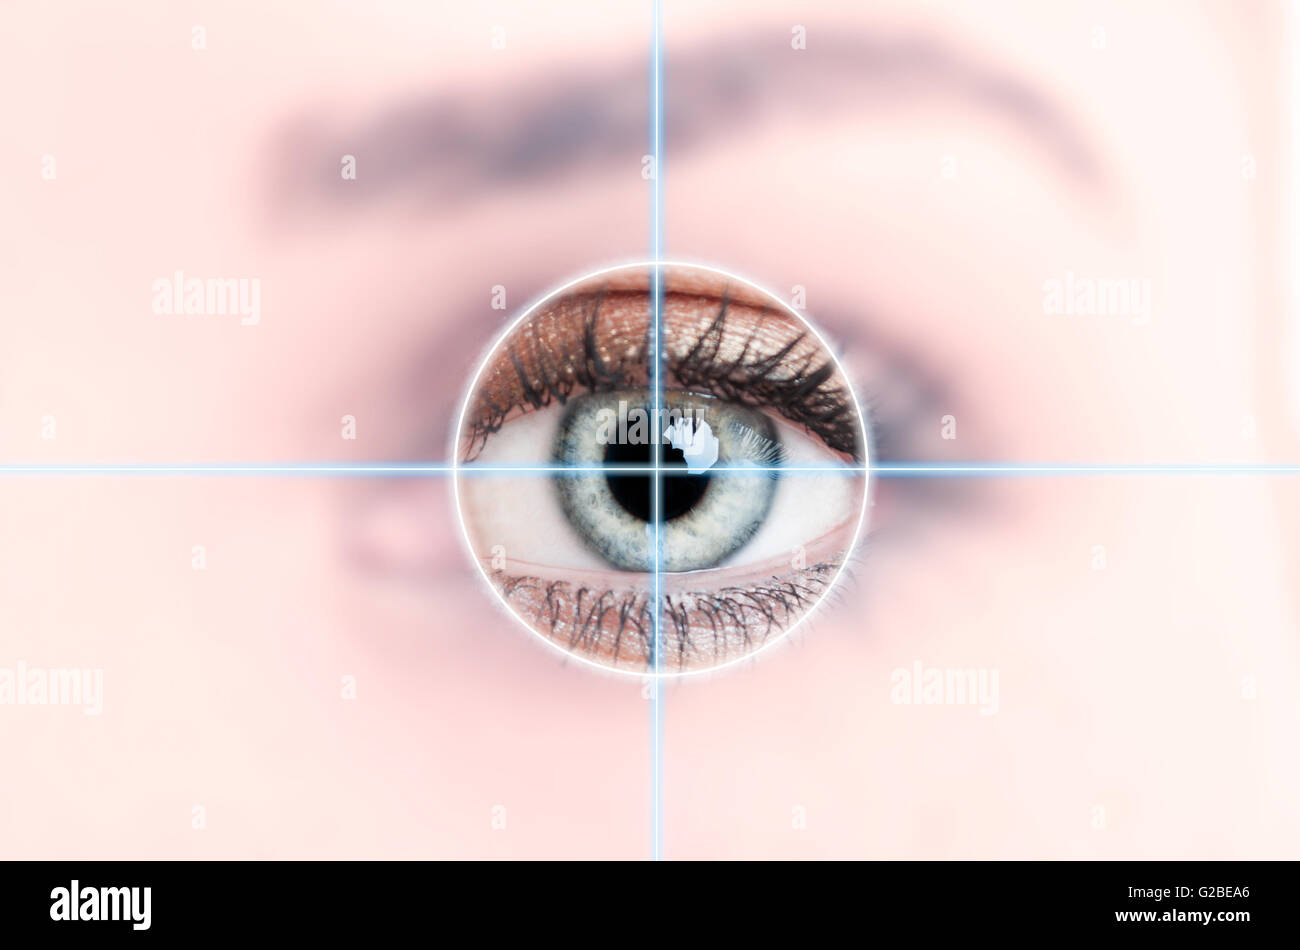 Close up of female blue eye scanned for access as high-tech personal identification concept - Stock Image